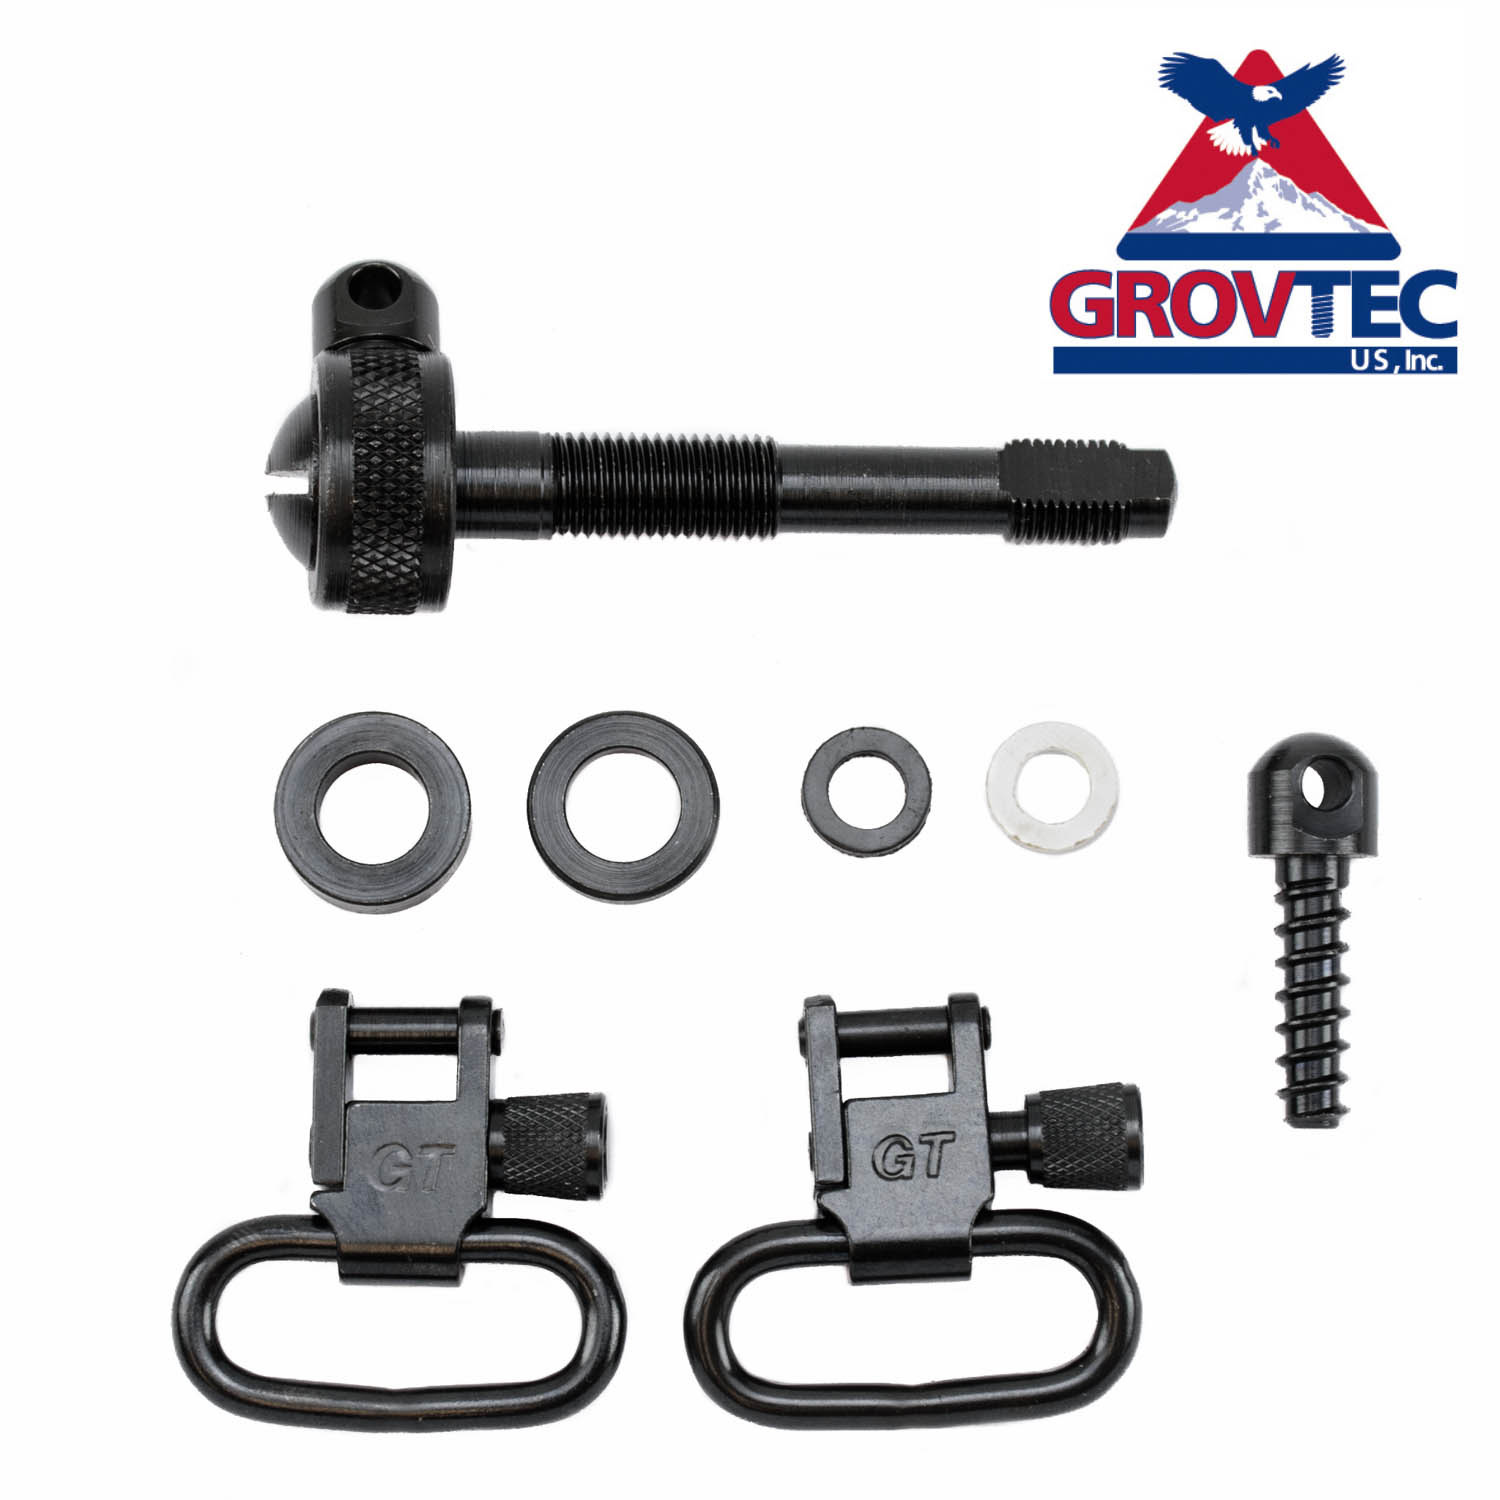 GrovTec Remington 742 ADL Swivel Set, 1